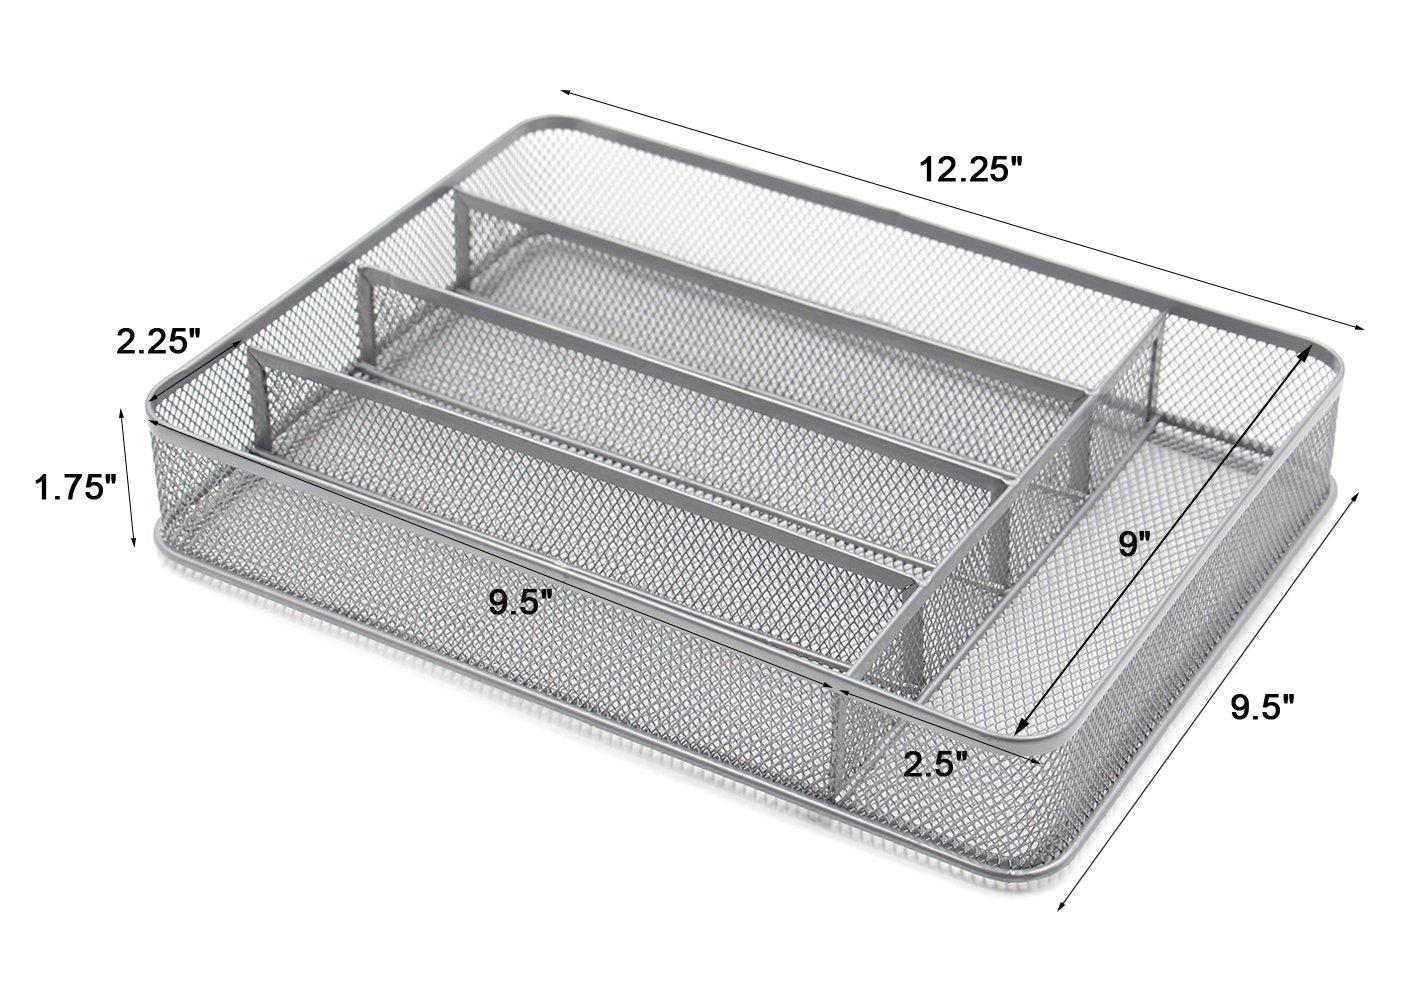 ESYLIFE 5 Compartment Mesh Kitchen Cutlery Trays Silverware Storage Kitchen Utensil Flatware Tray, Silver by Esy-Life (Image #3)